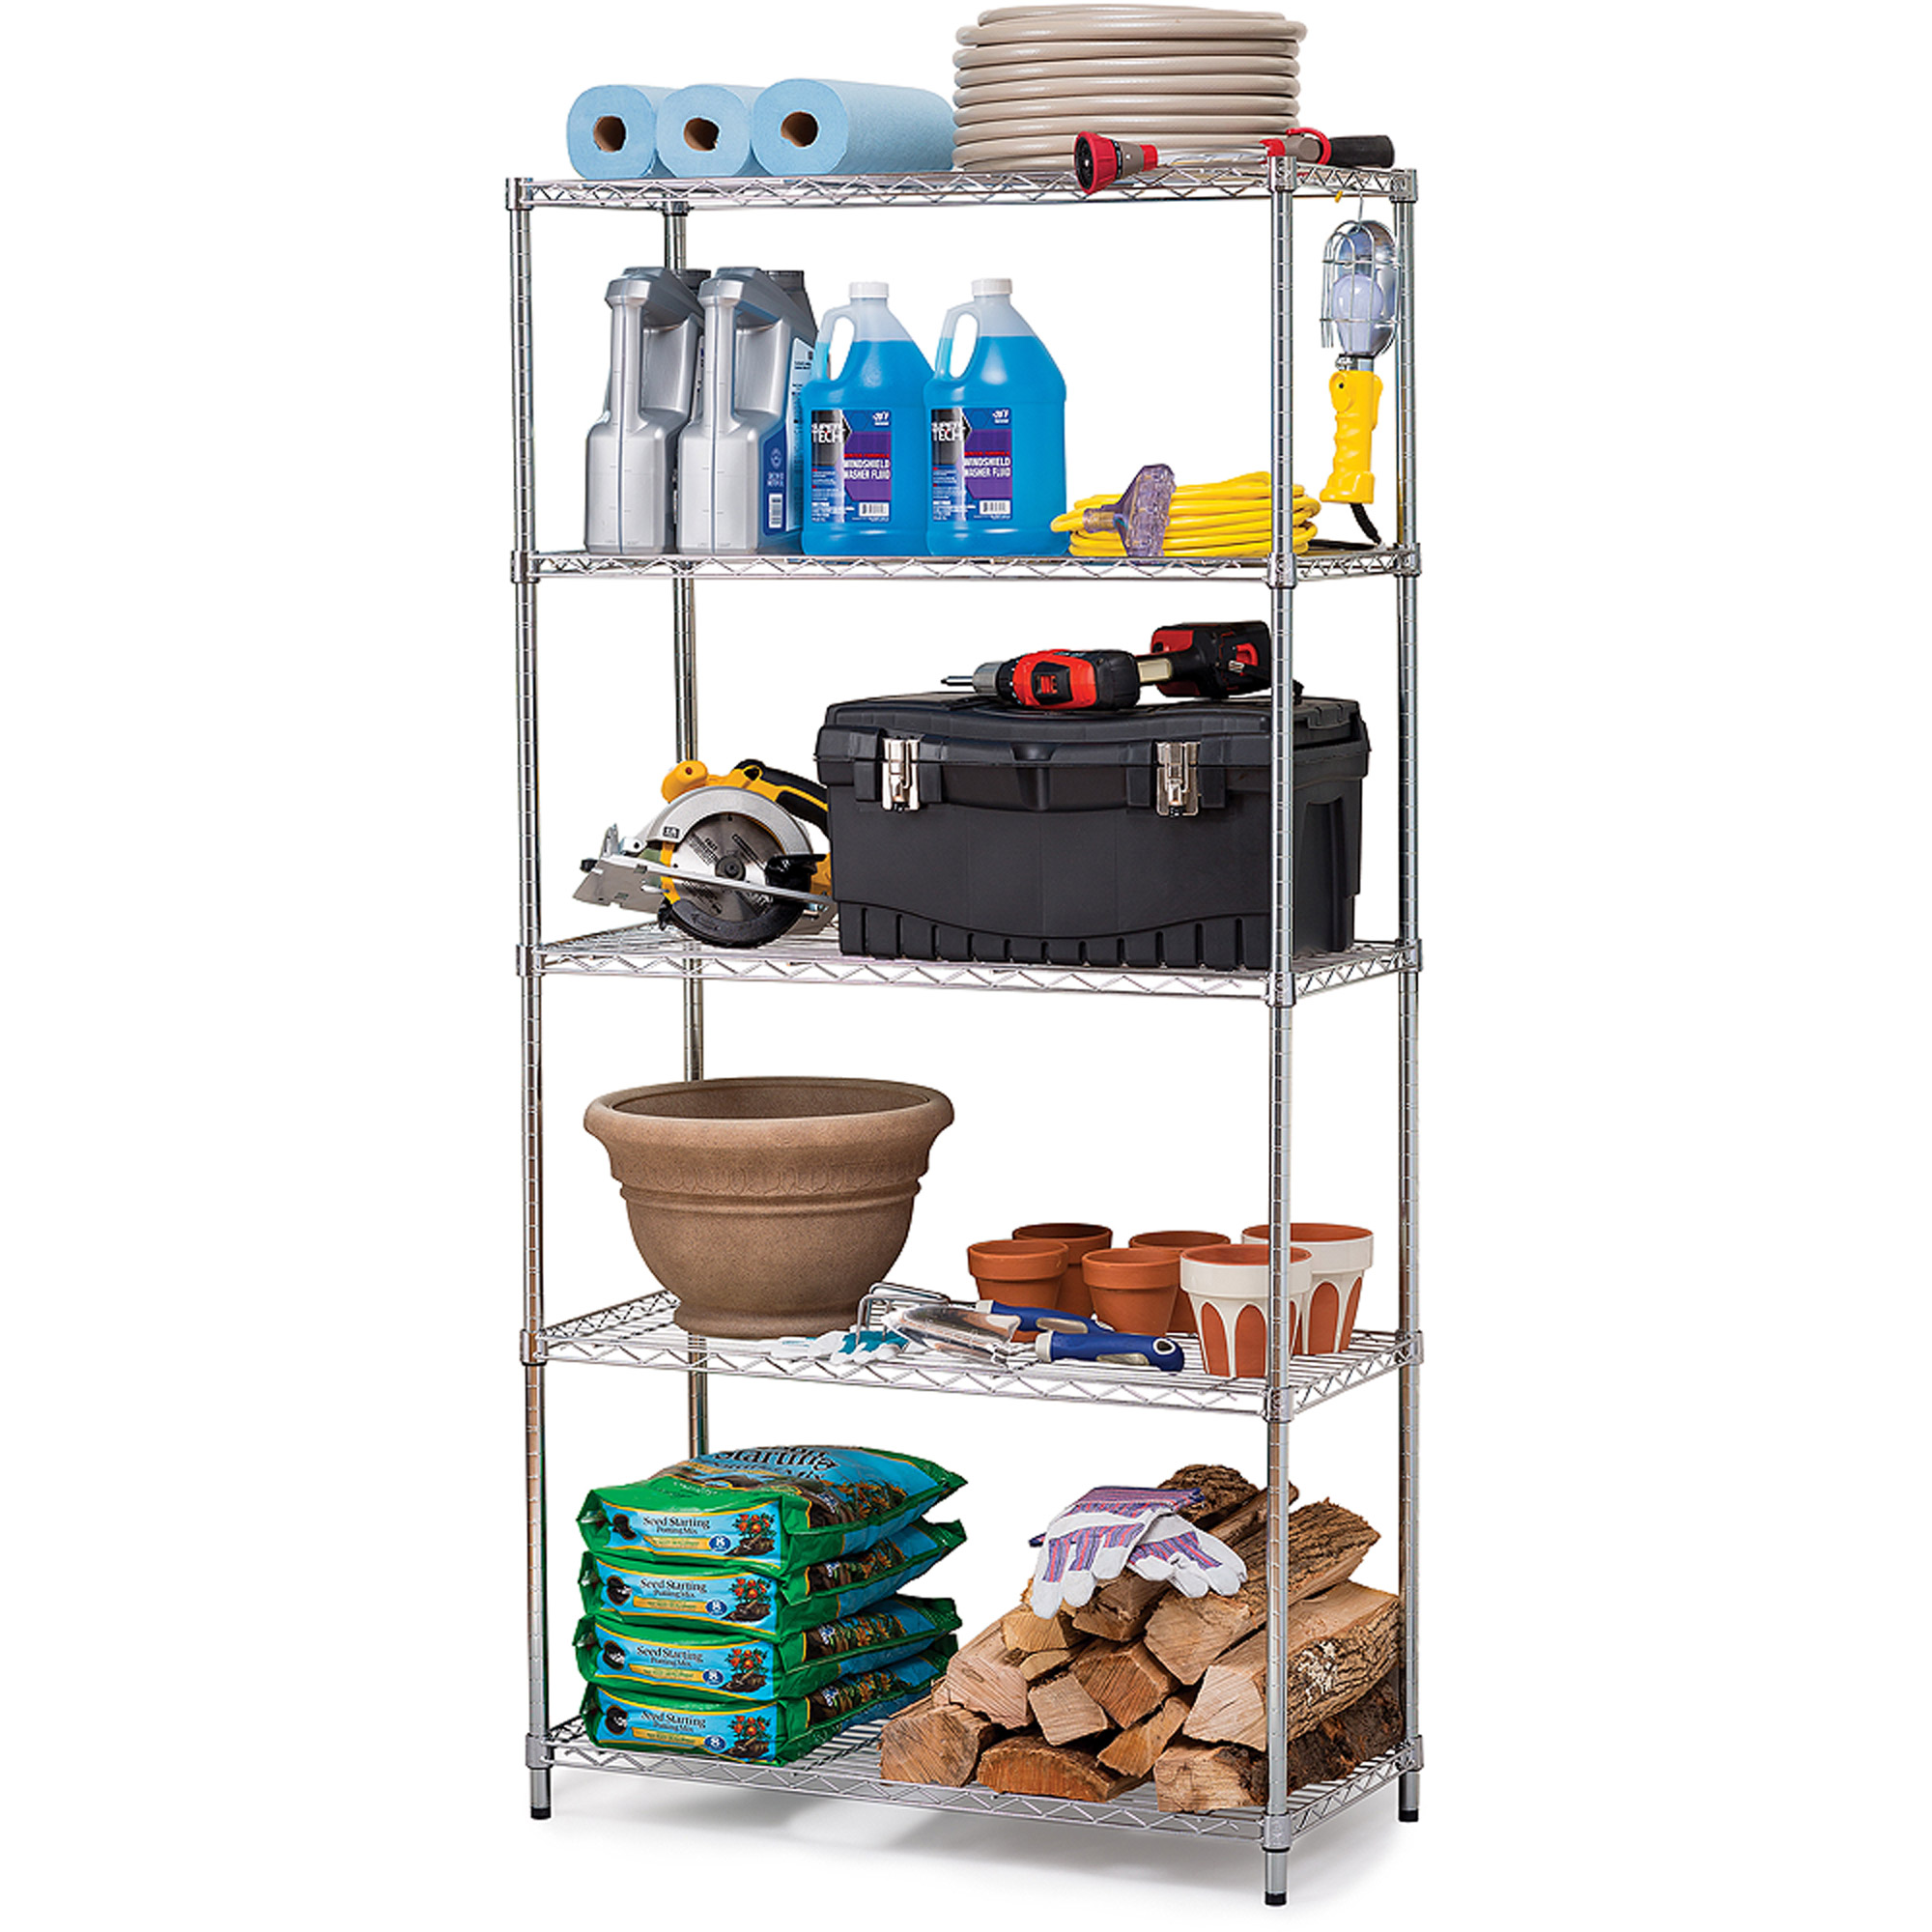 Work Choice 5-Tier Commercial Wire Shelving Rack Zinc  sc 1 st  Walmart & Work Choice 5-Tier Commercial Wire Shelving Rack Zinc - Walmart.com